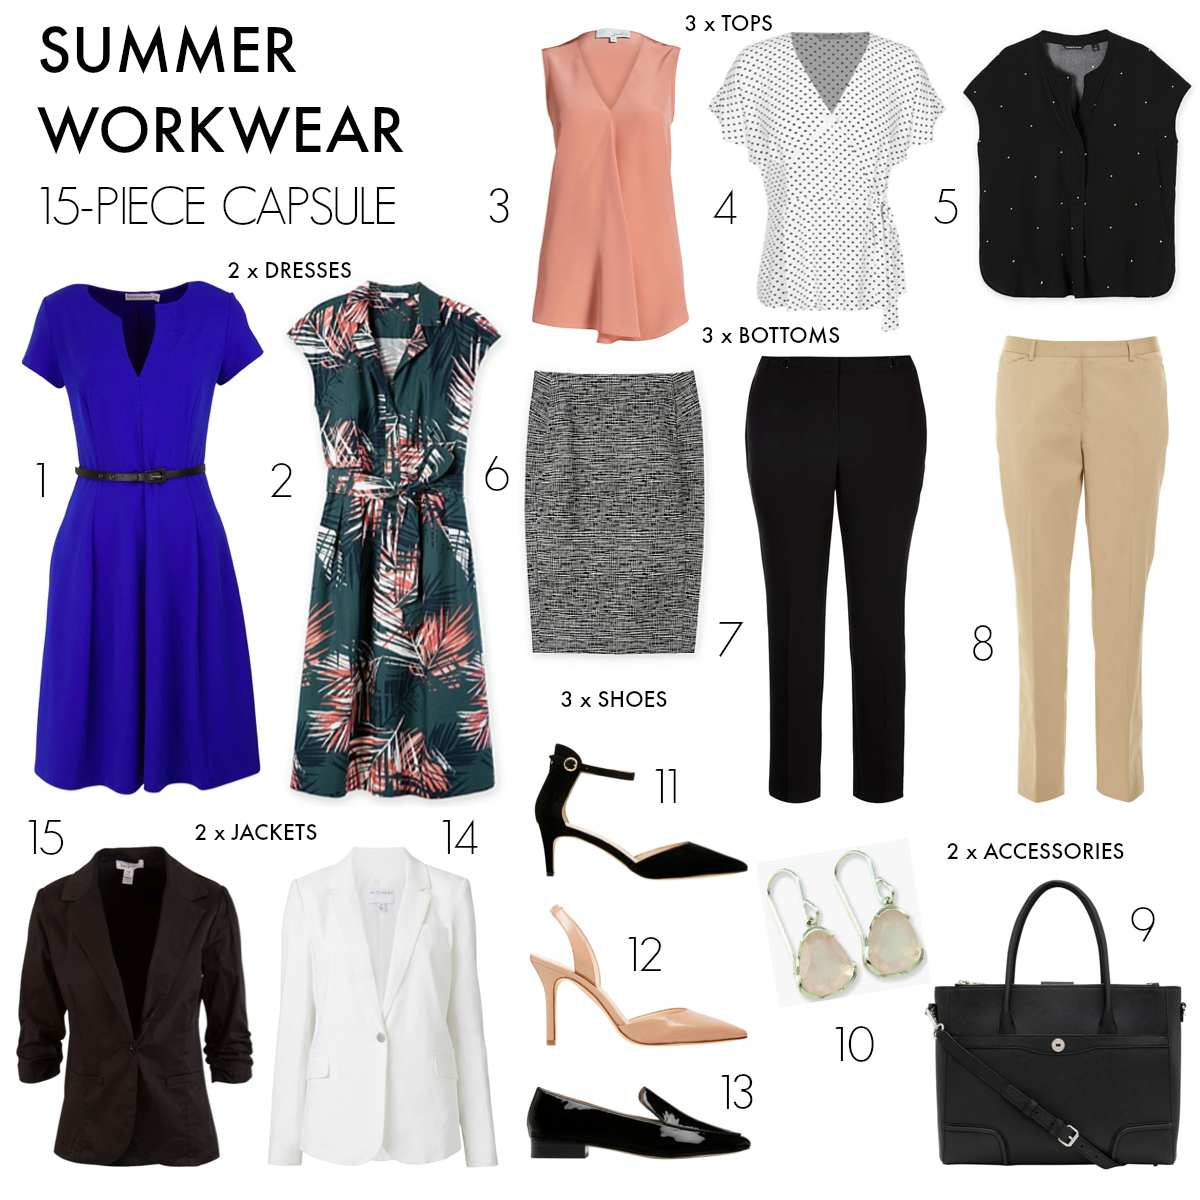 003e015d71a7 How to create a 15-piece summer workwear capsule wardrobe